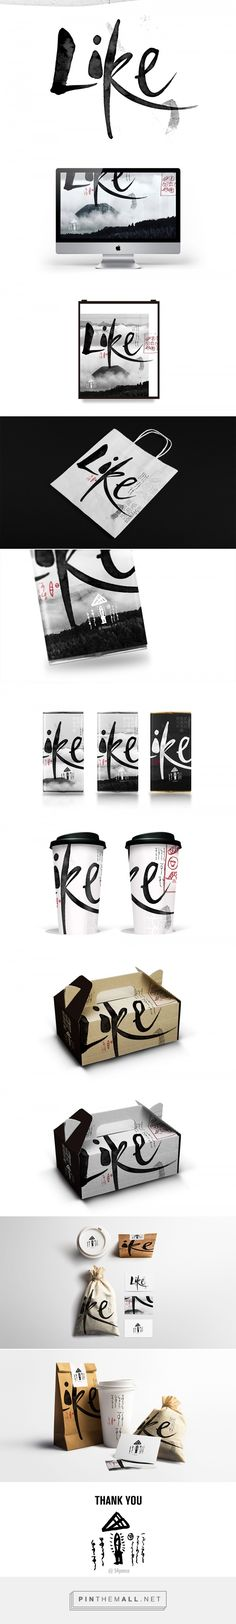 Like Branding and Packaging by 54yonco on Behance | Fivestar Branding – Design and Branding Agency & Inspiration Gallery